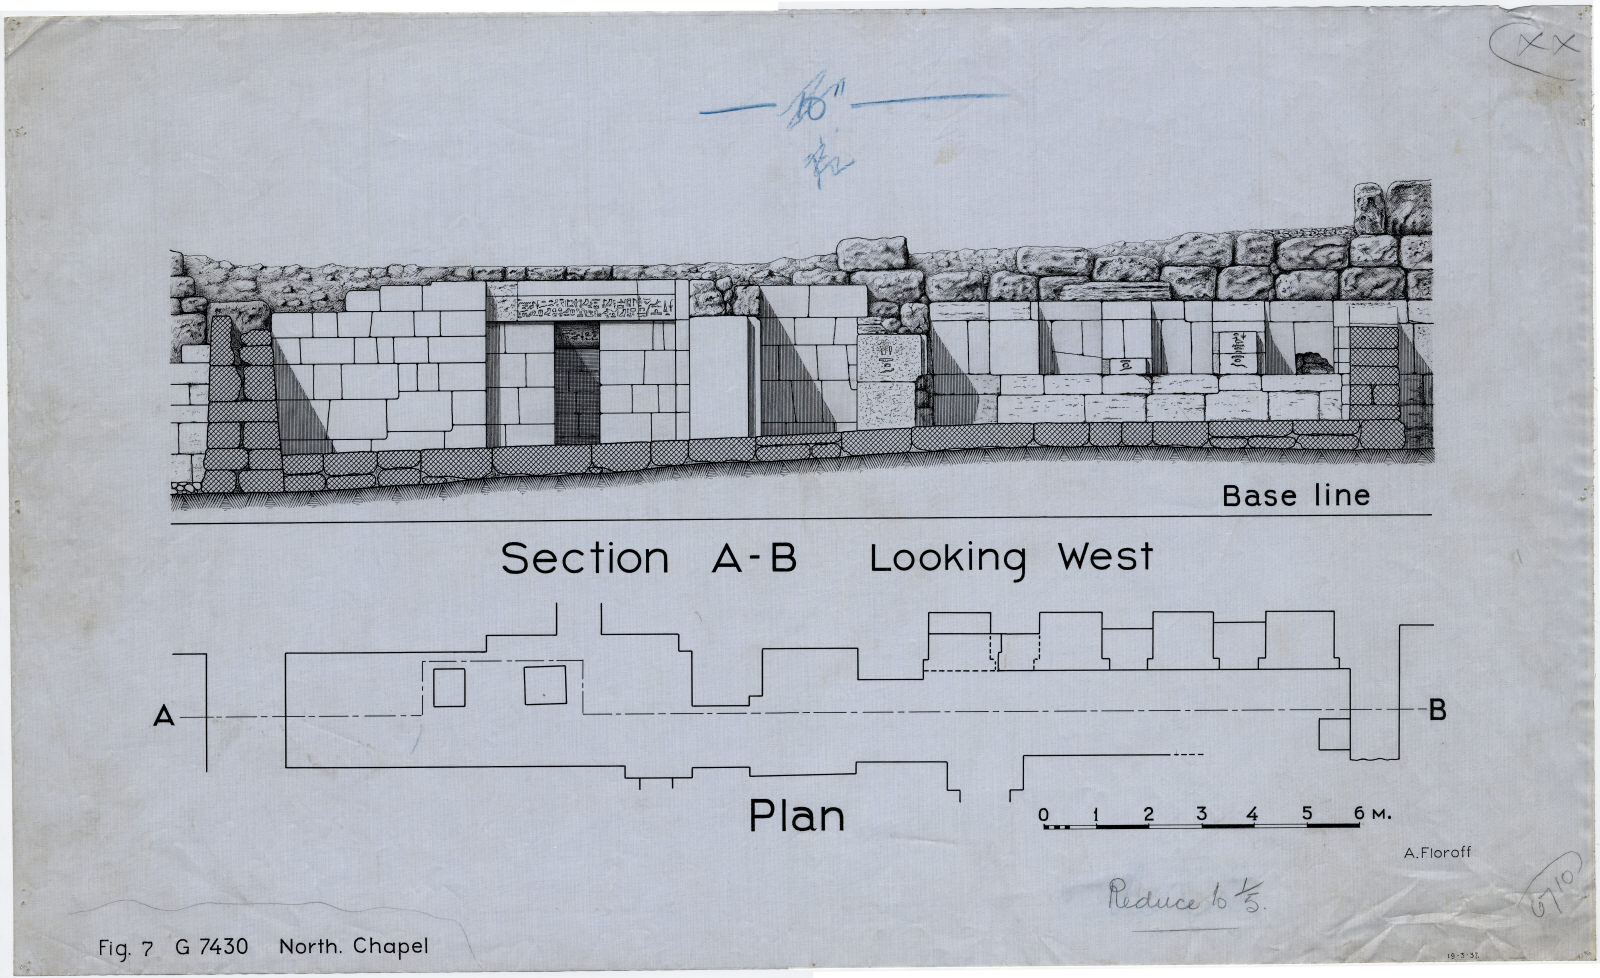 Maps and plans: G 7430, Plan and section of north chapel